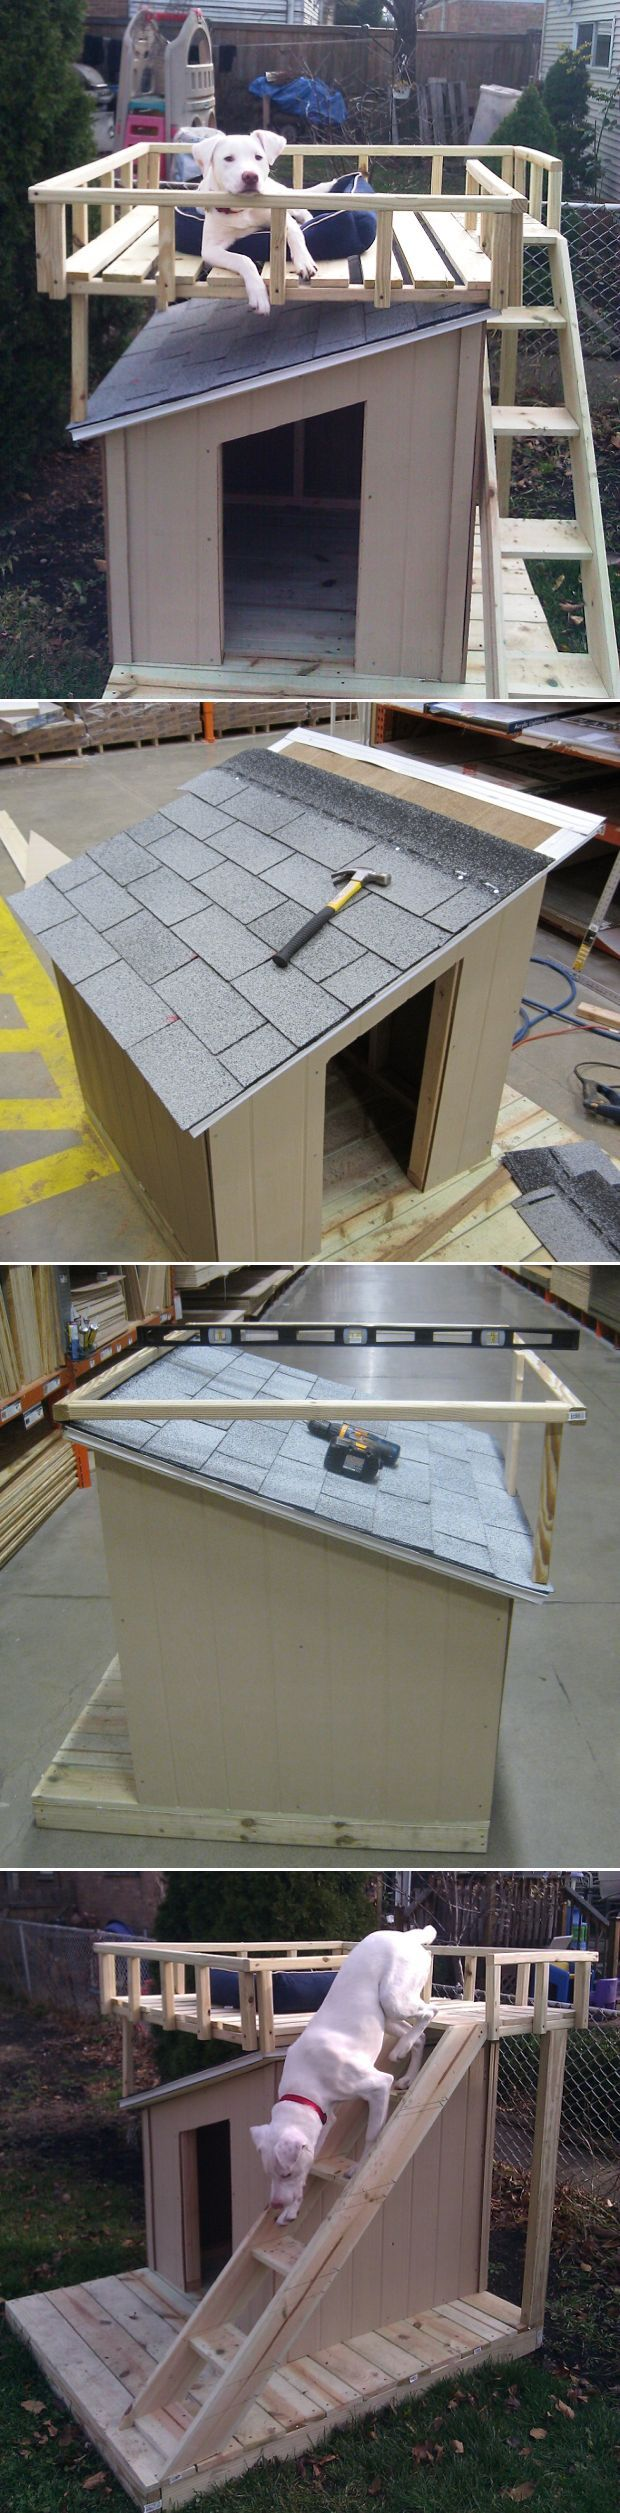 Awesome DIY Dog Houses